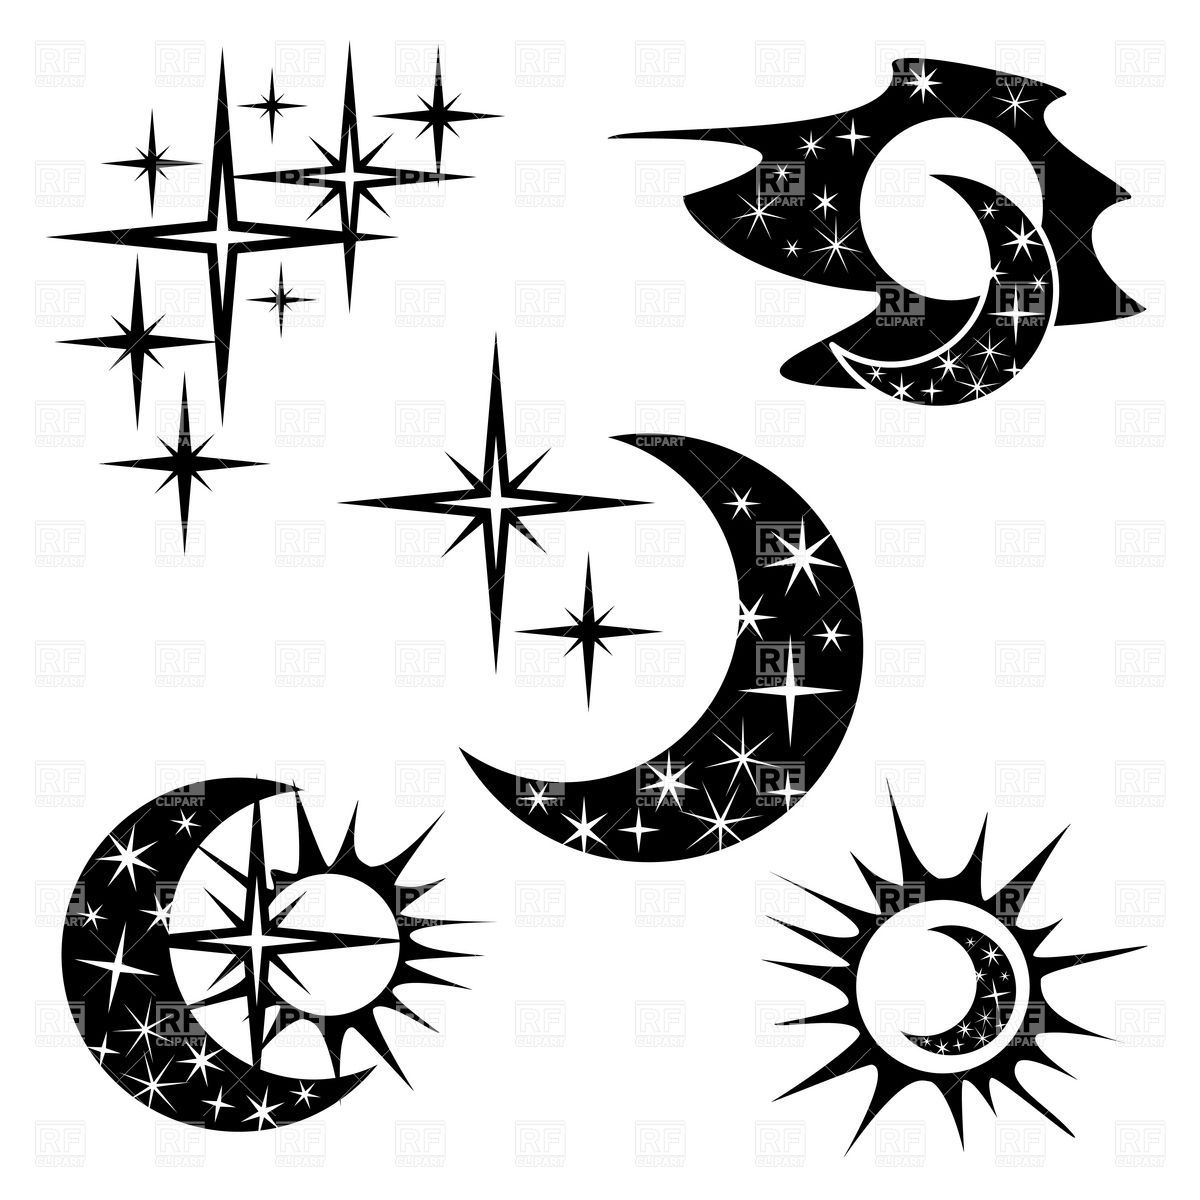 Suns and halfmoon collection, Icons and Emblems, Moon